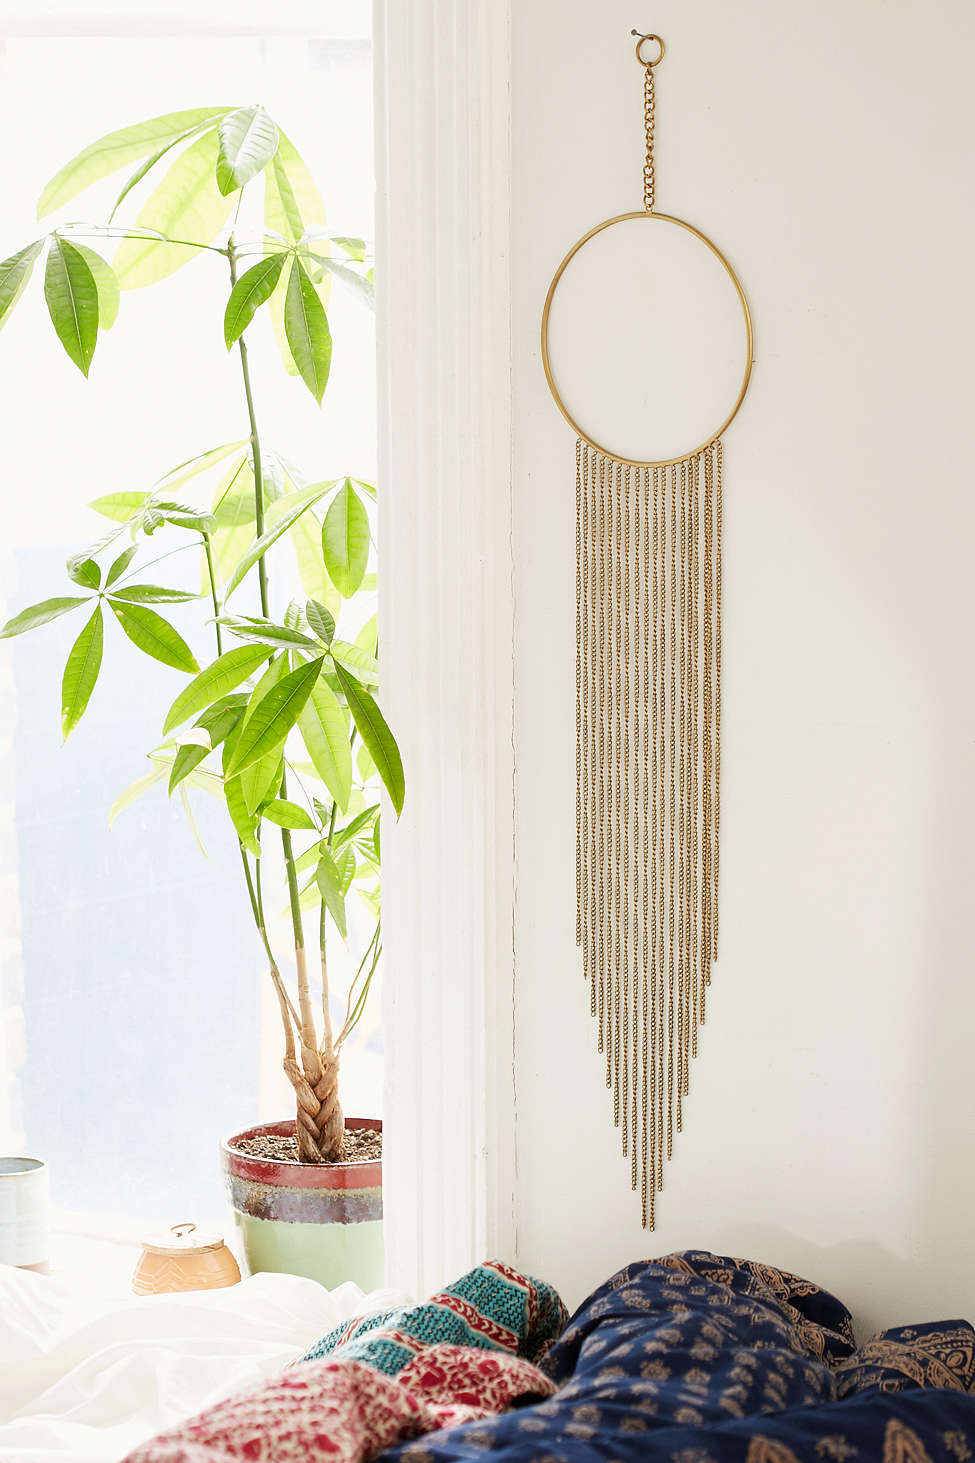 wall hangings view in gallery metal wall hanging from urban outfitters JFKMMYB